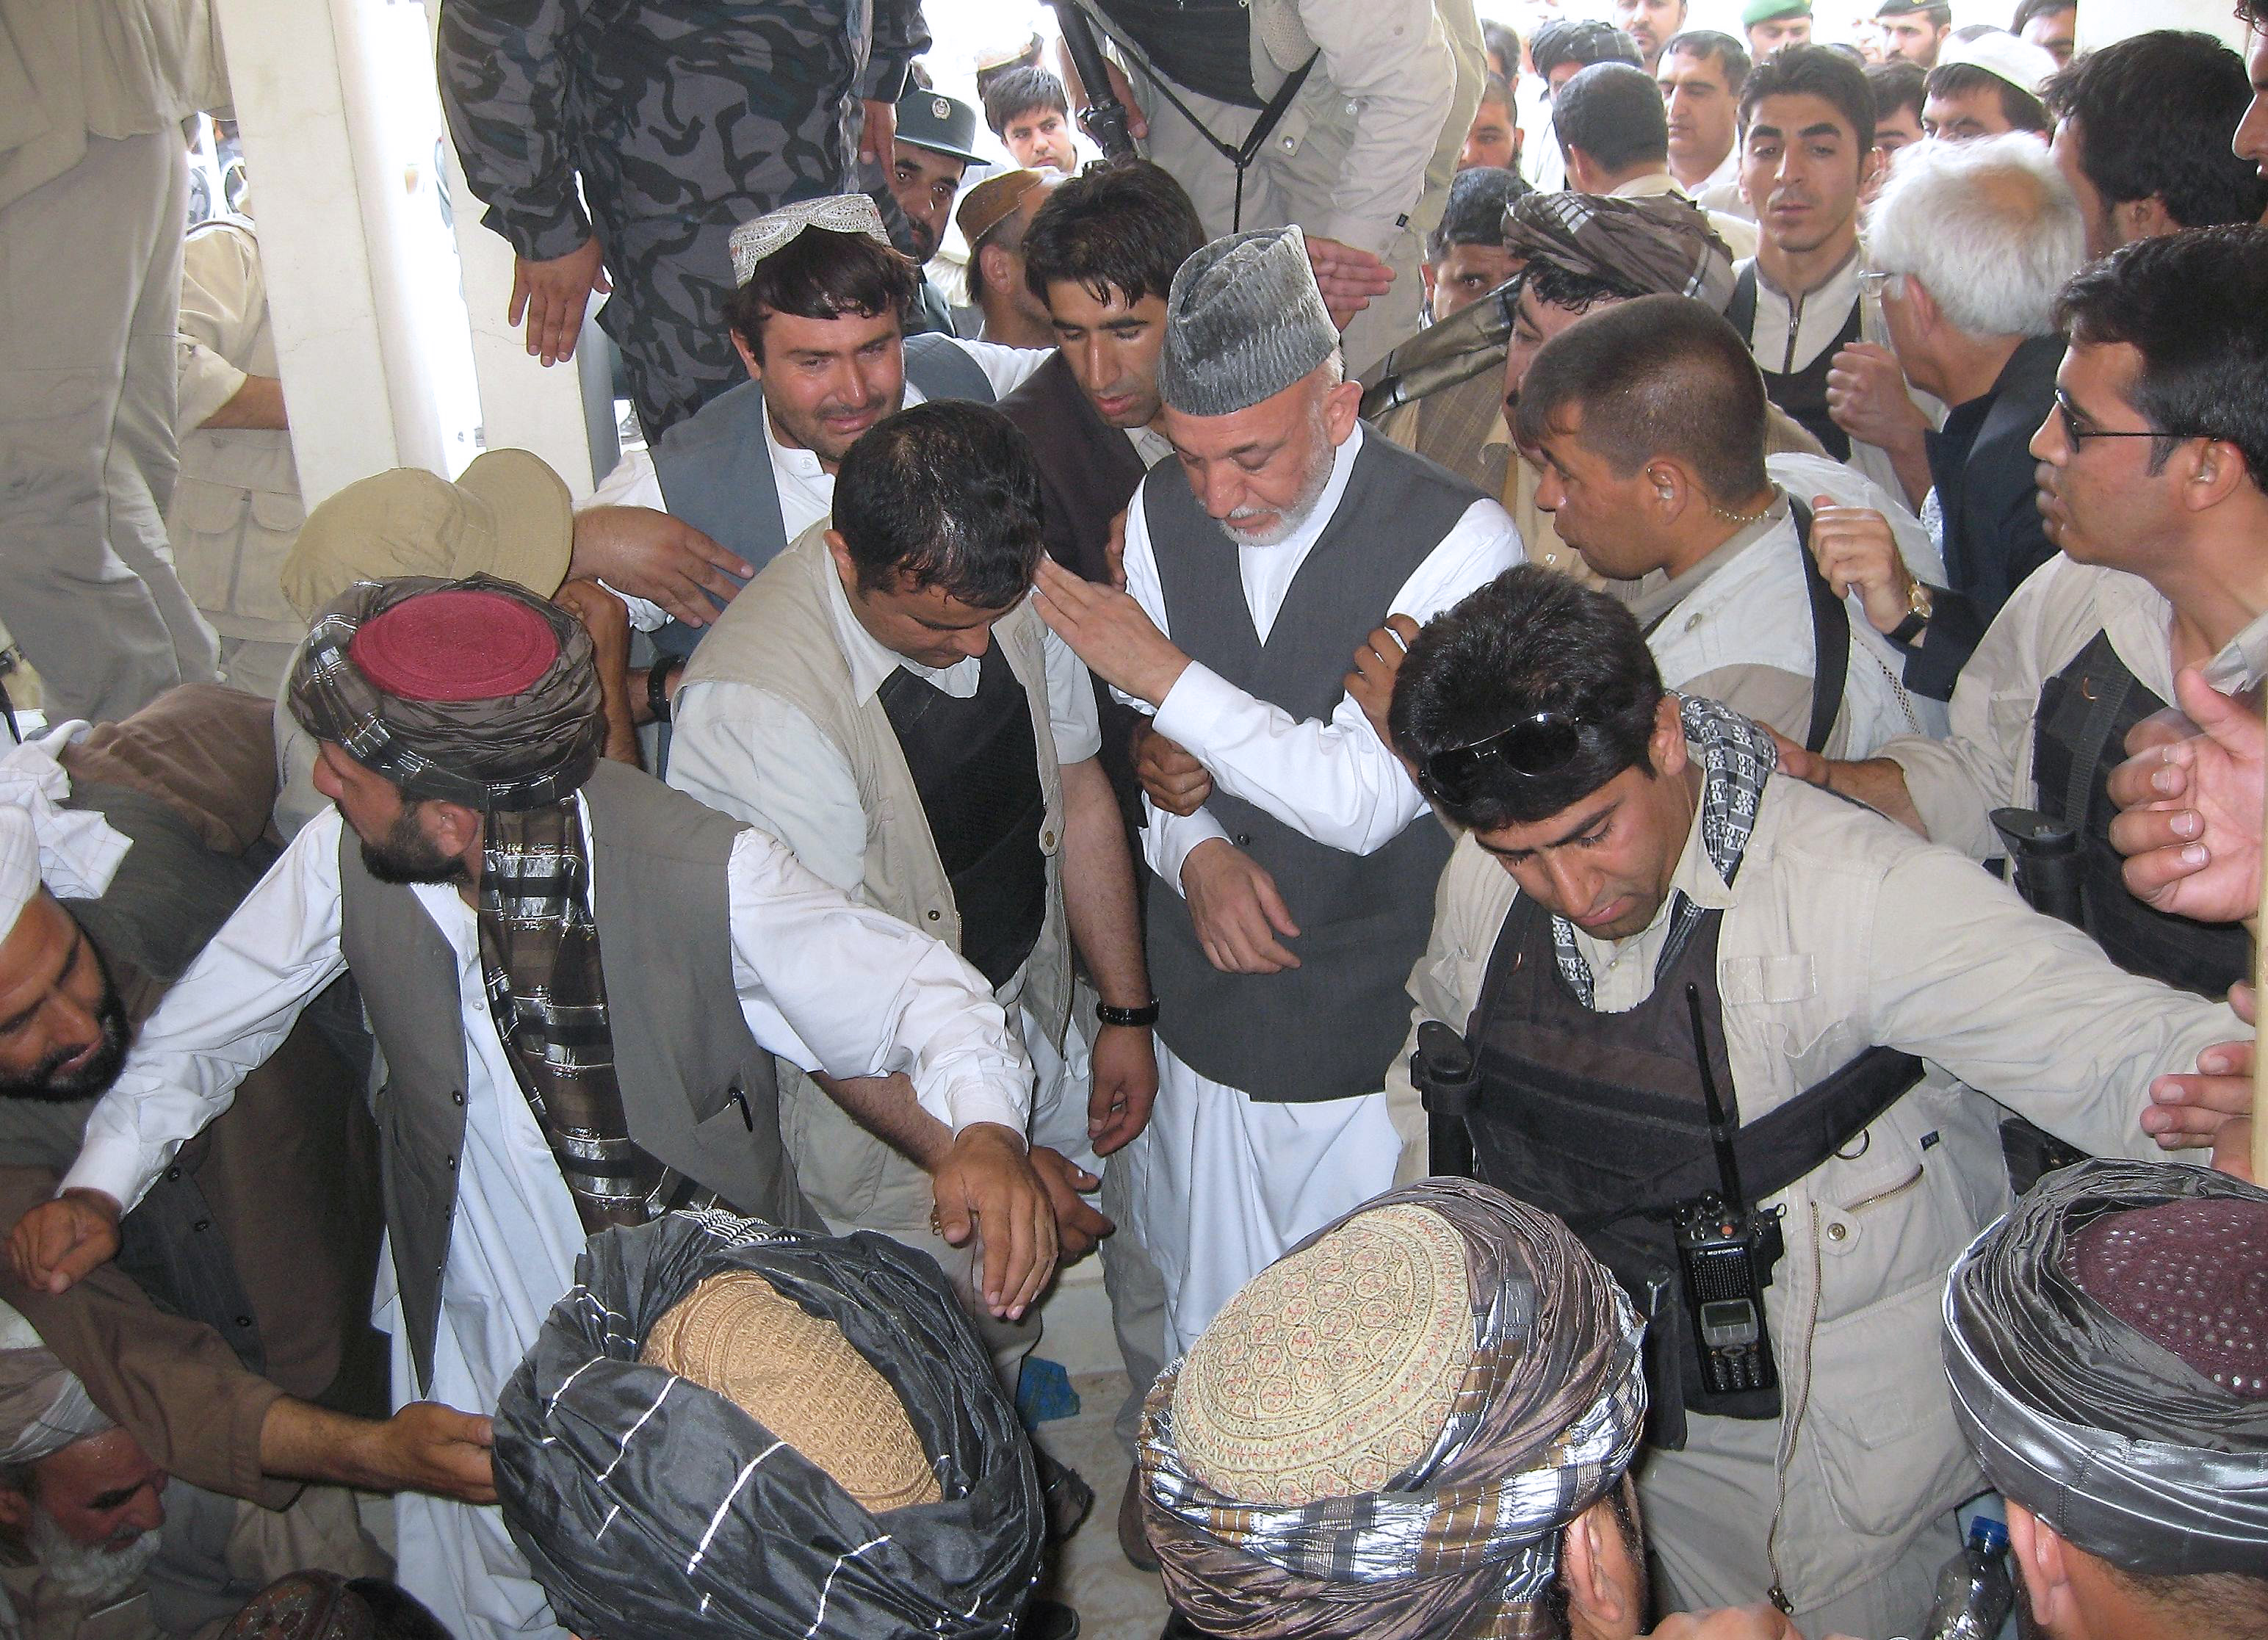 Killer of Karzai's half-brother worked against Taliban, officials say